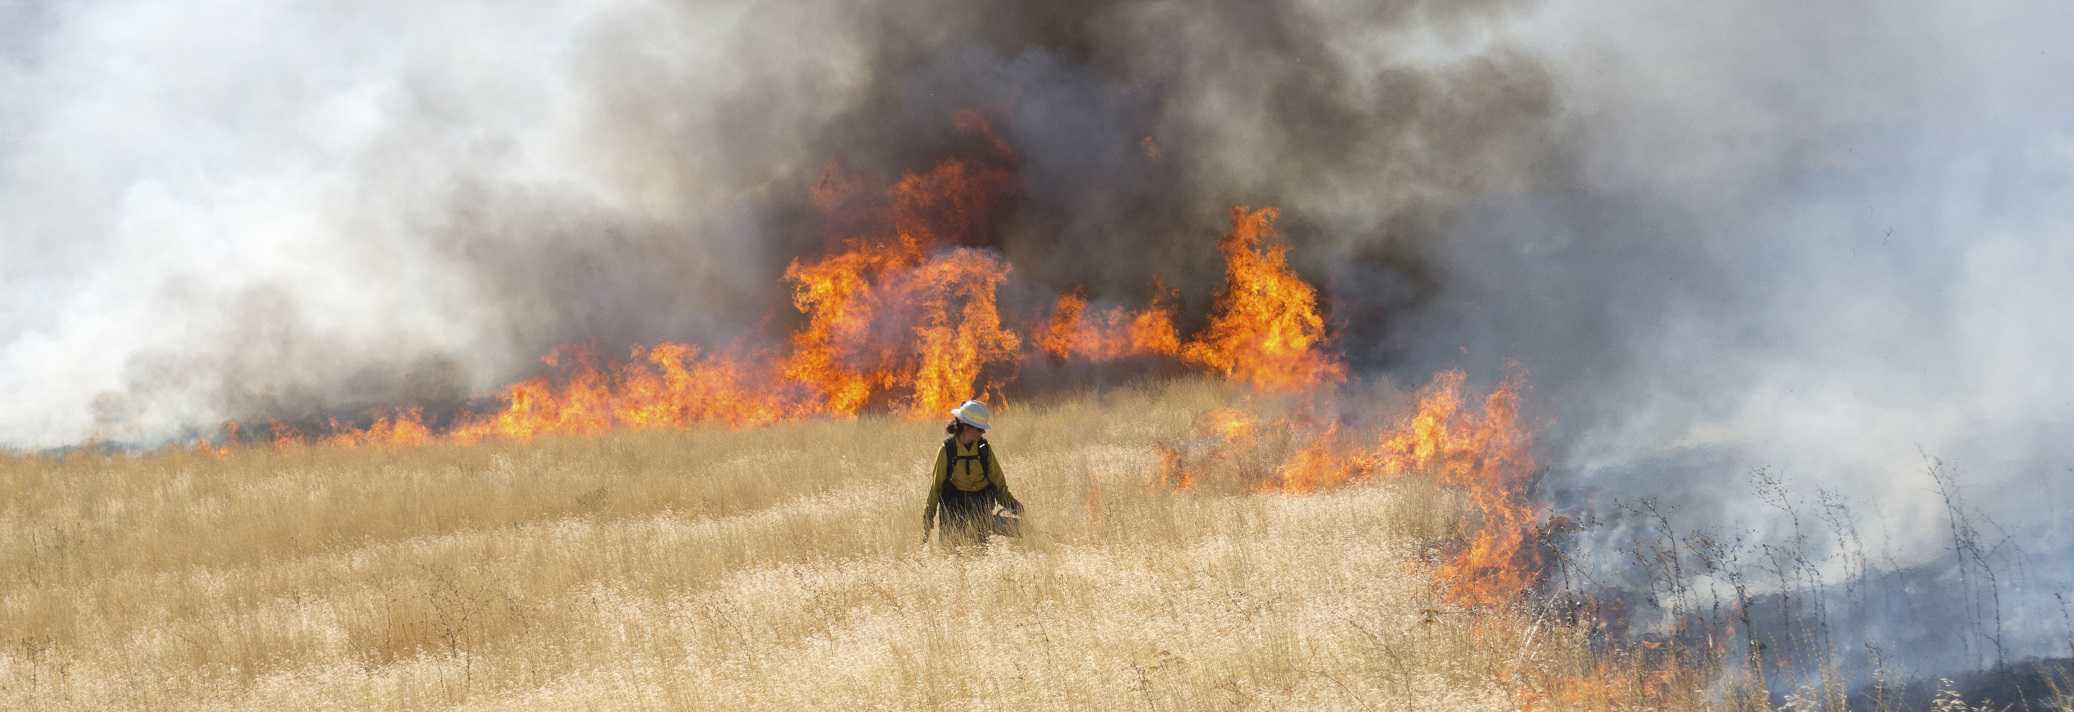 Fire practitioner walking through a field, with burning grass to her left